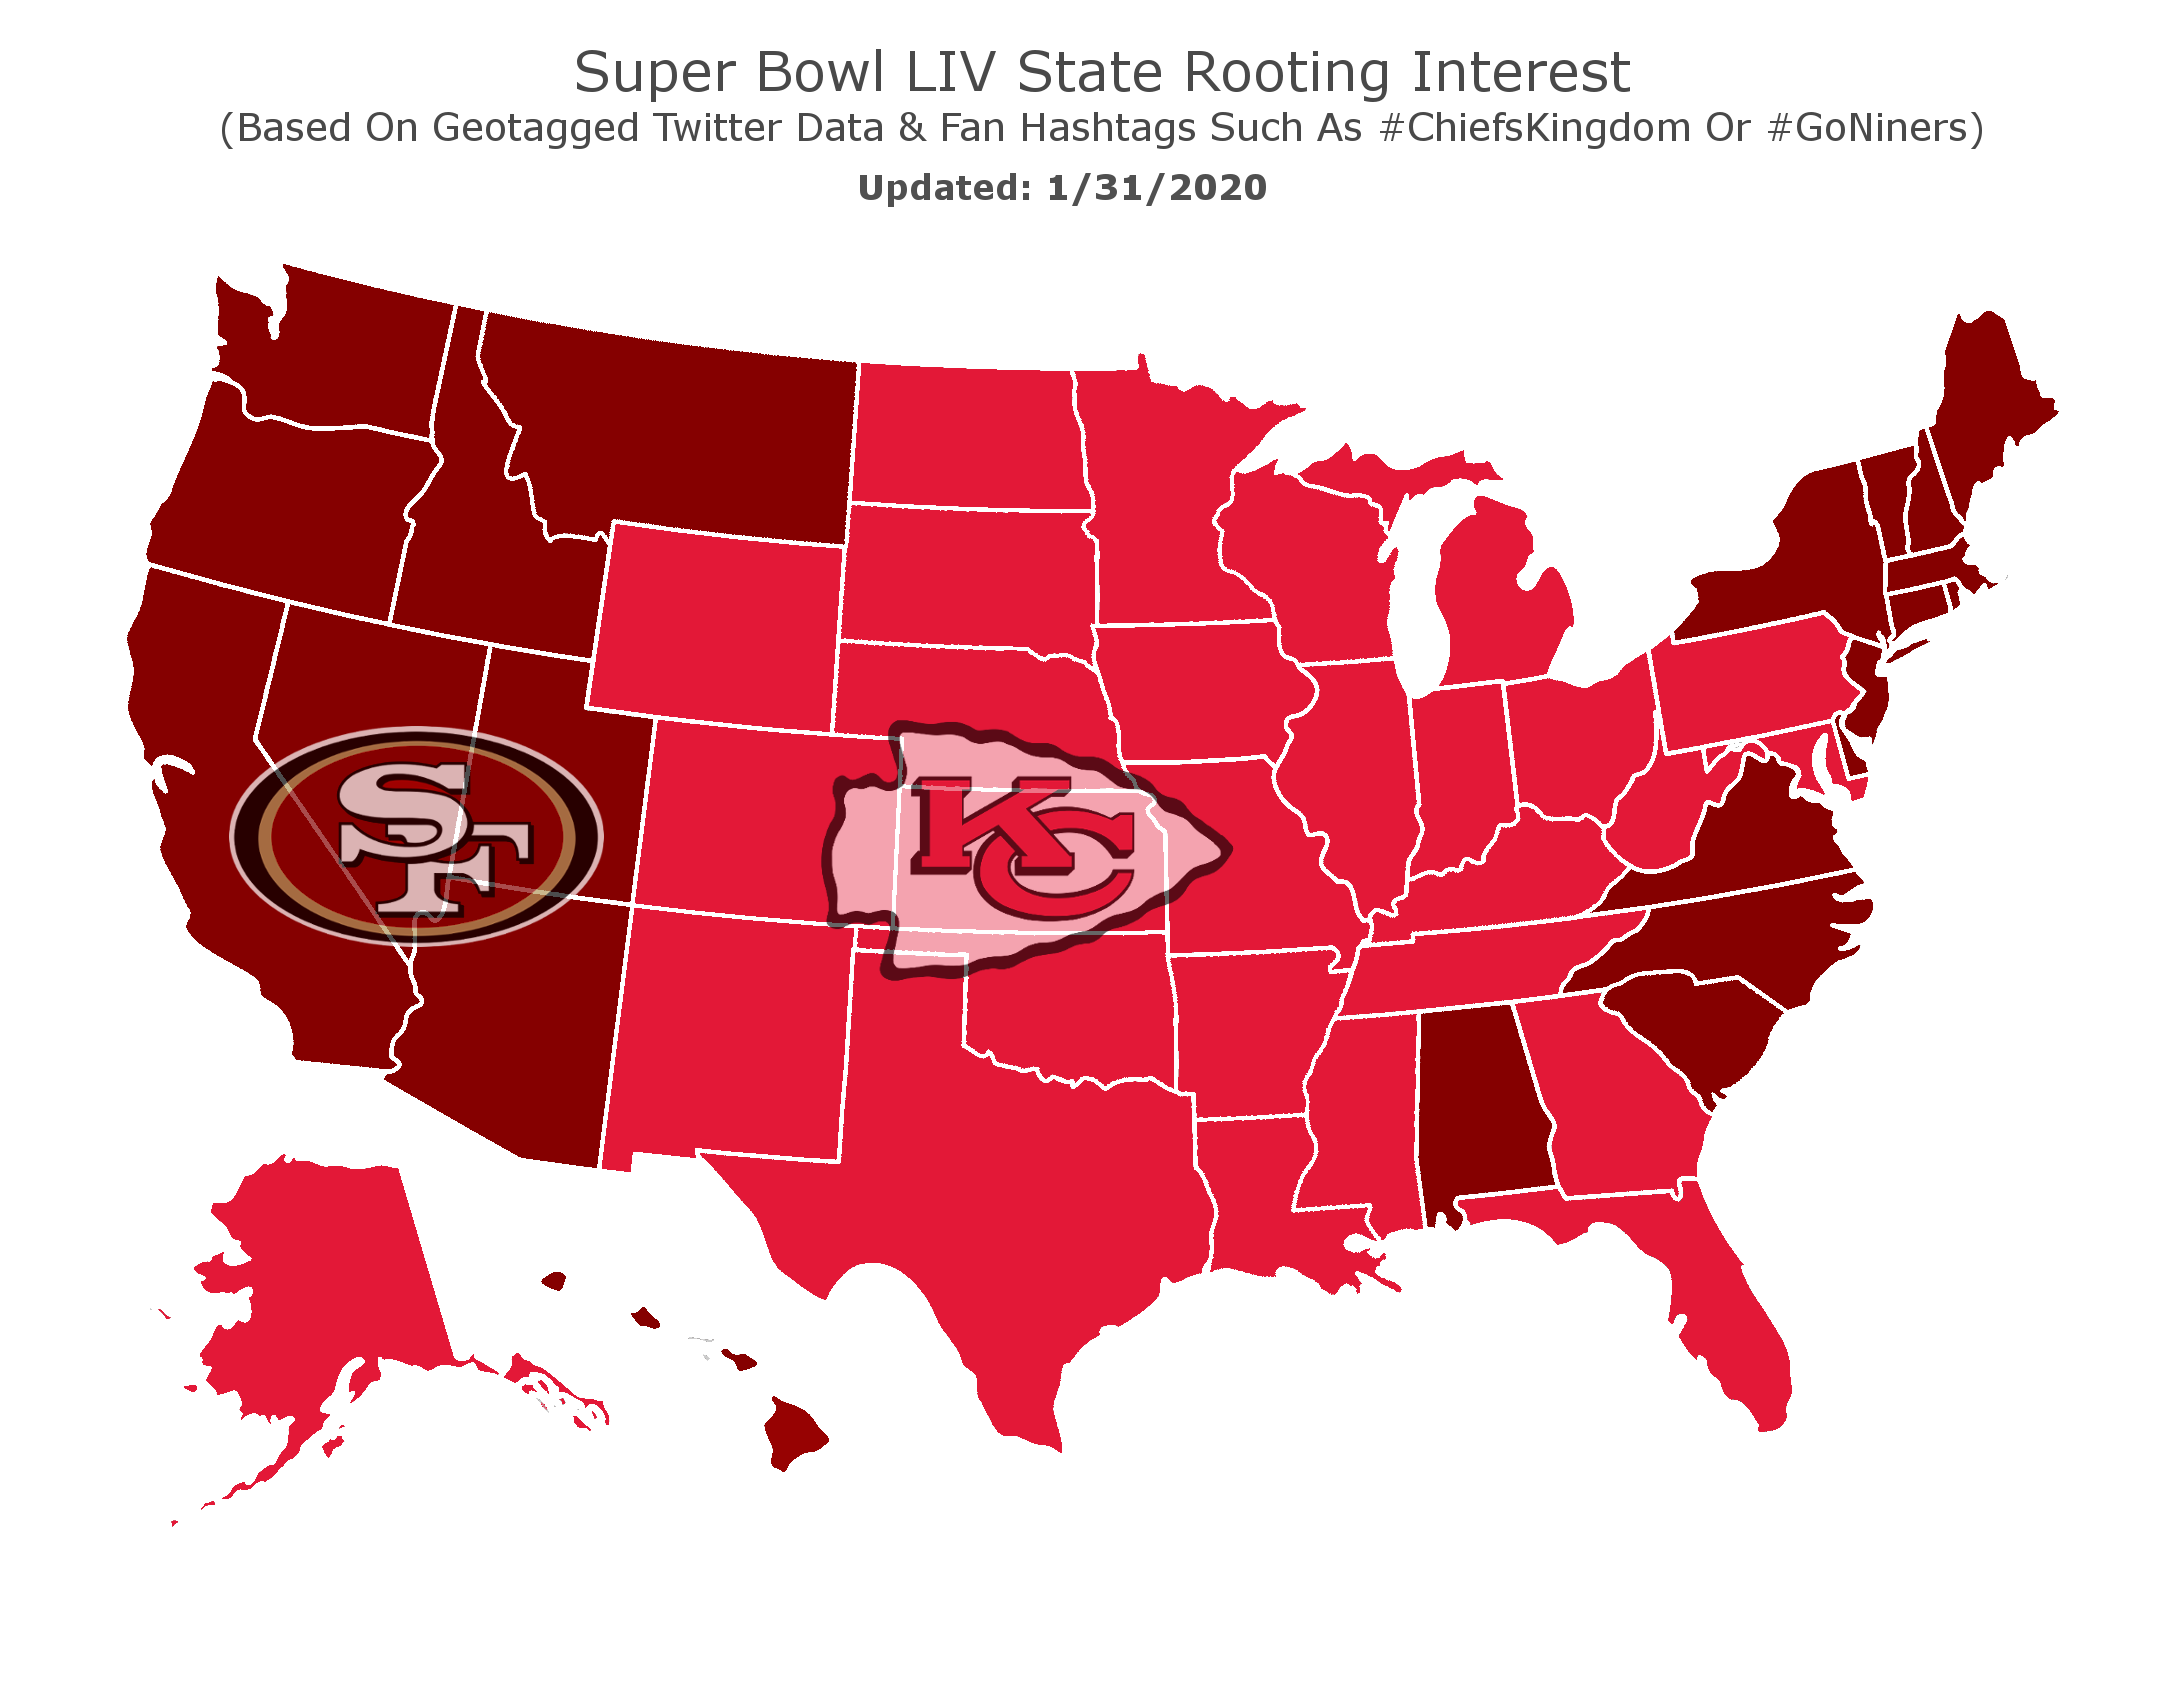 super bowl LIV map updated